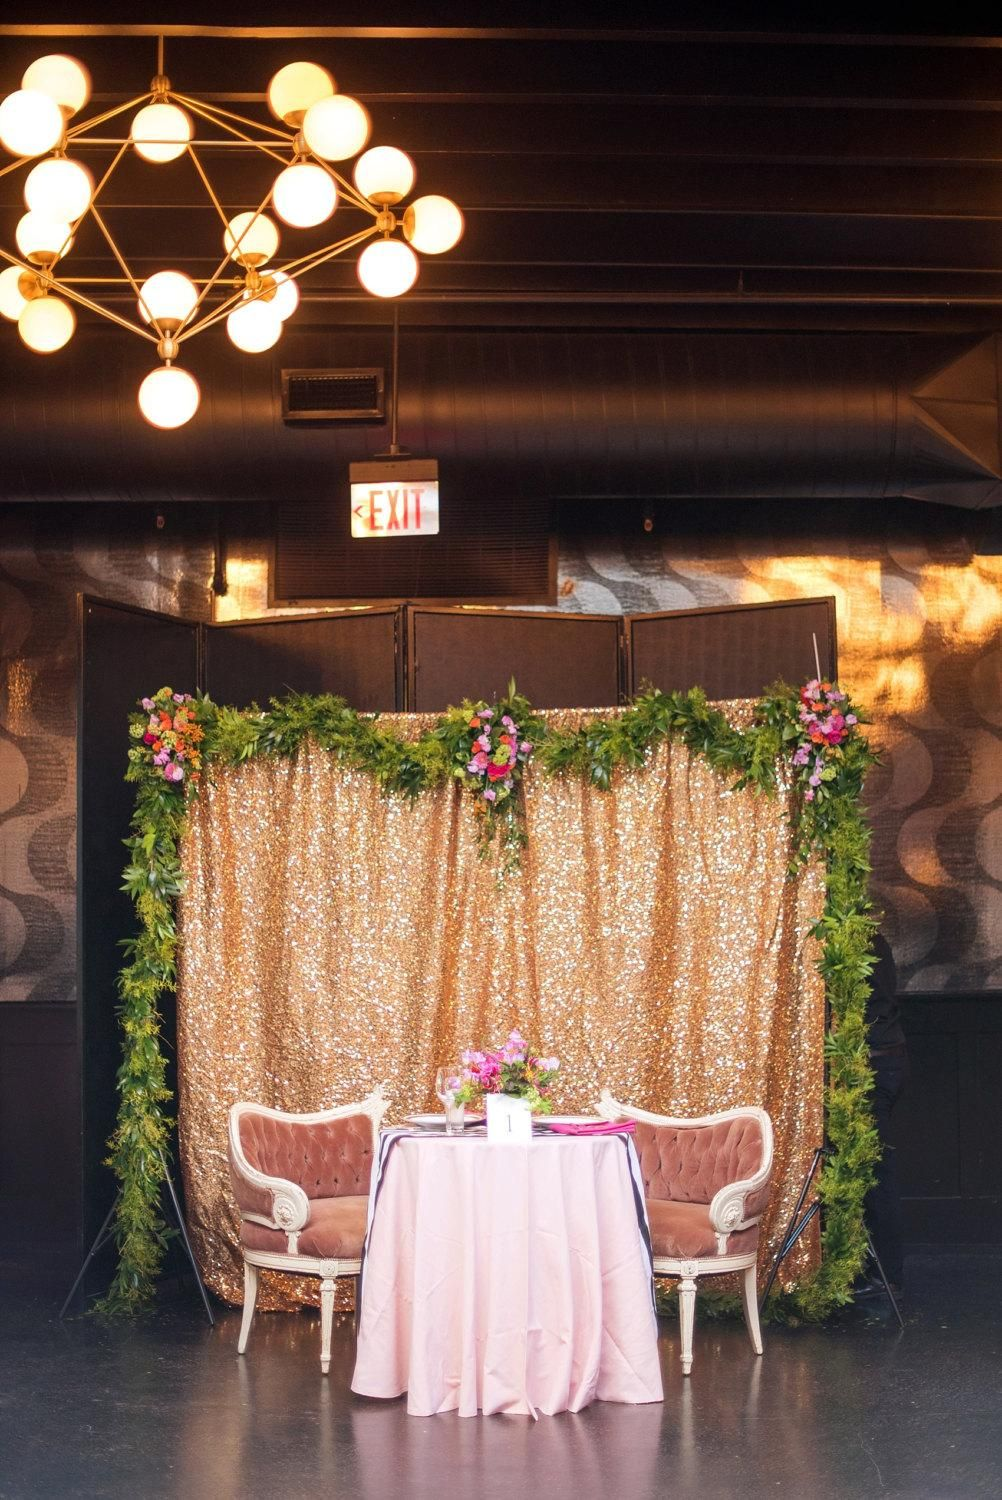 Wedding decorations background  FT FT Gold Wedding Sequin Poto BoothPhotography Background